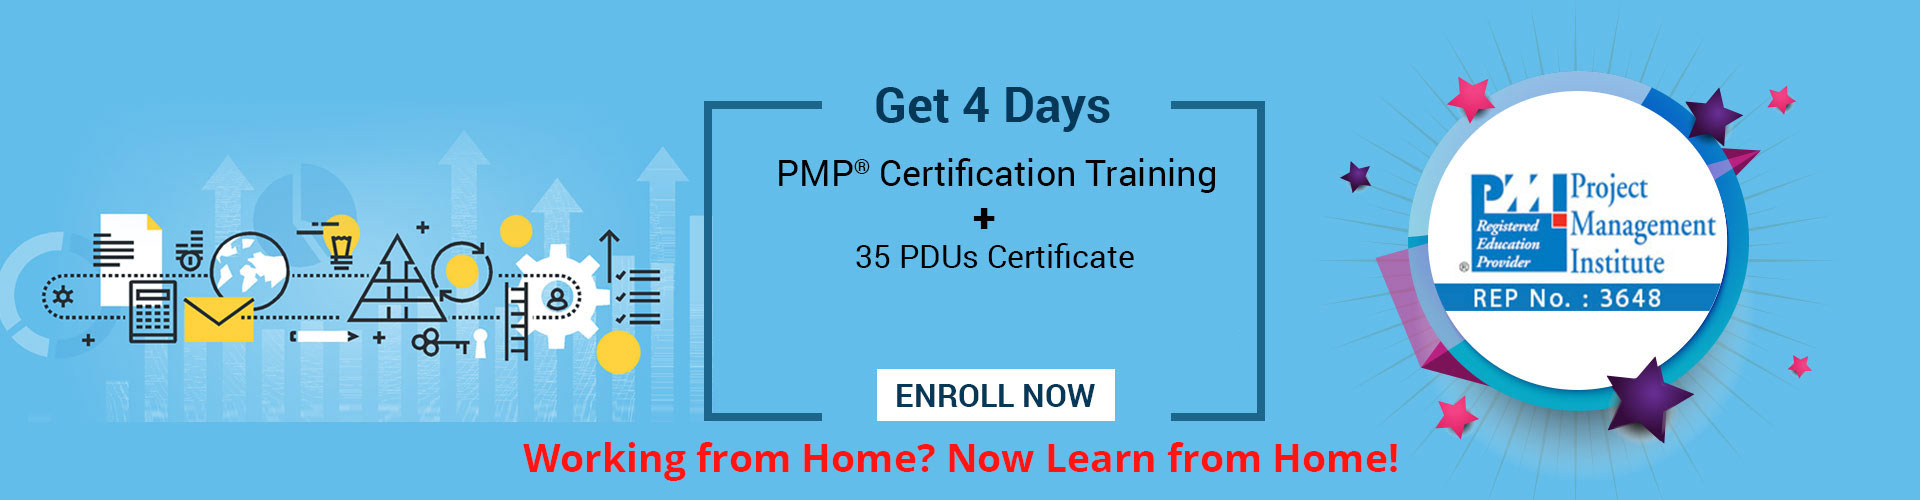 Project Management Professional Certification Preparation Training